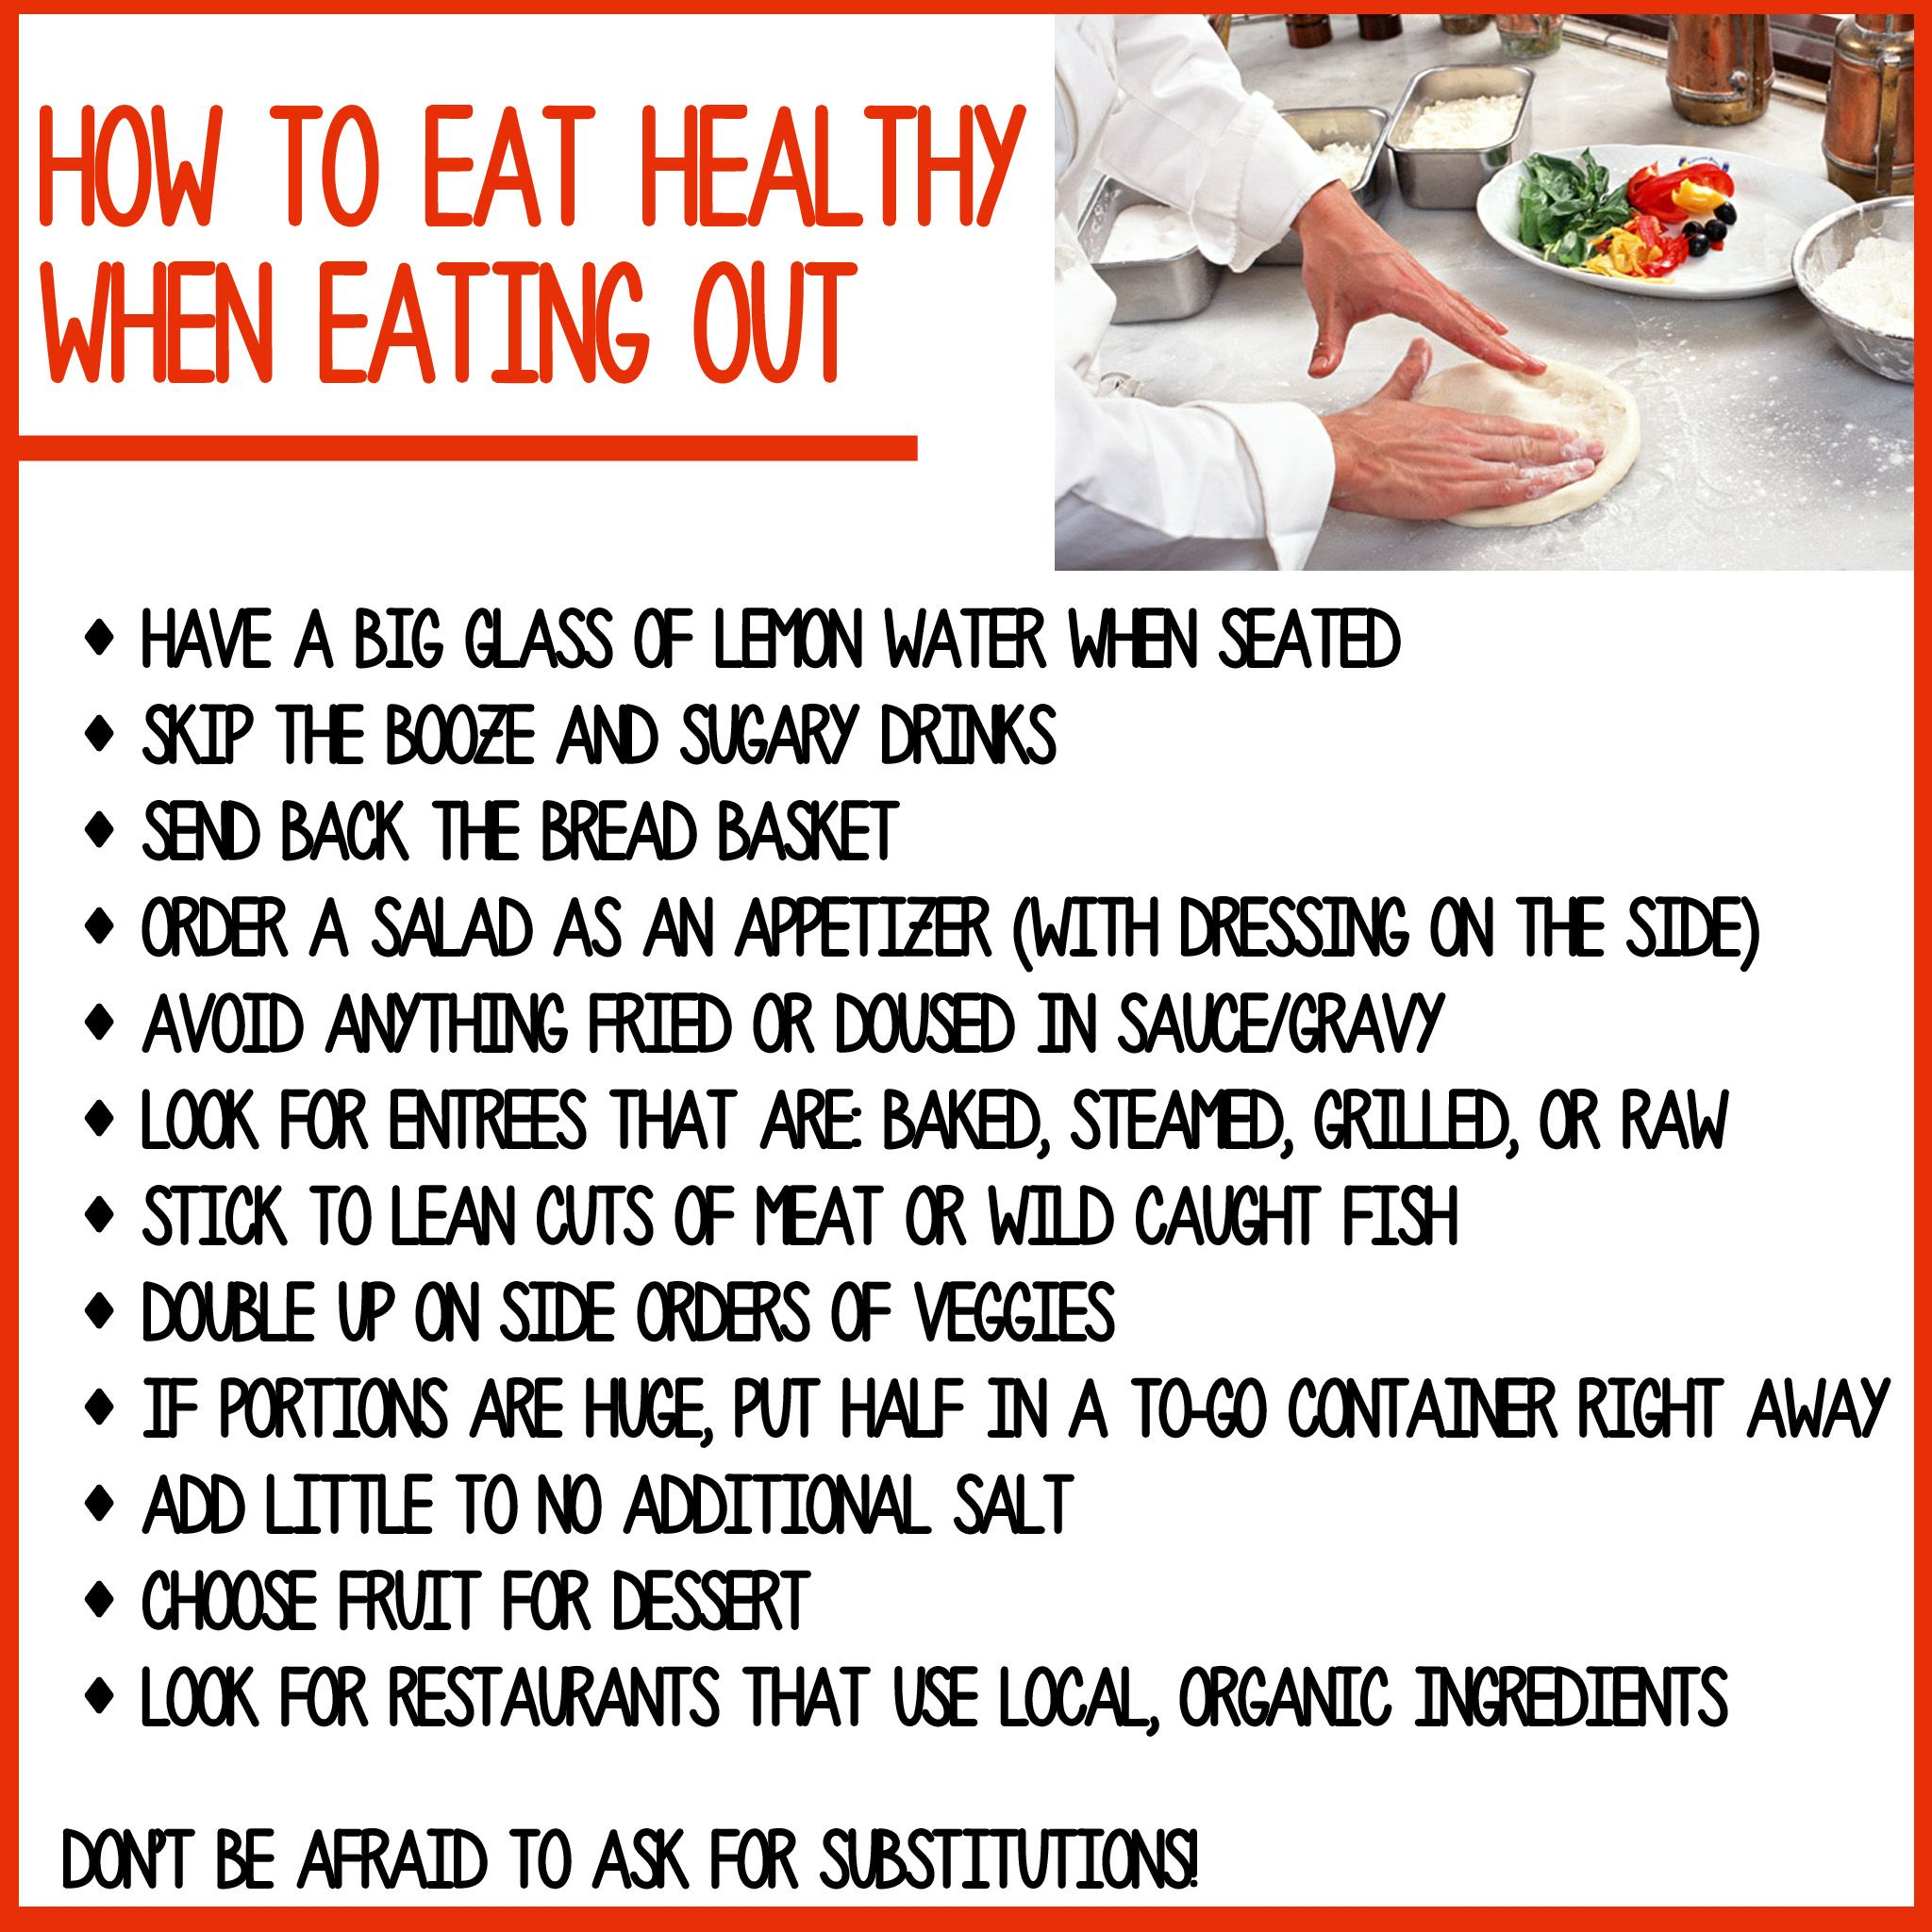 When Eating Out Healthy Tips | Healthy tips | Pinterest ...